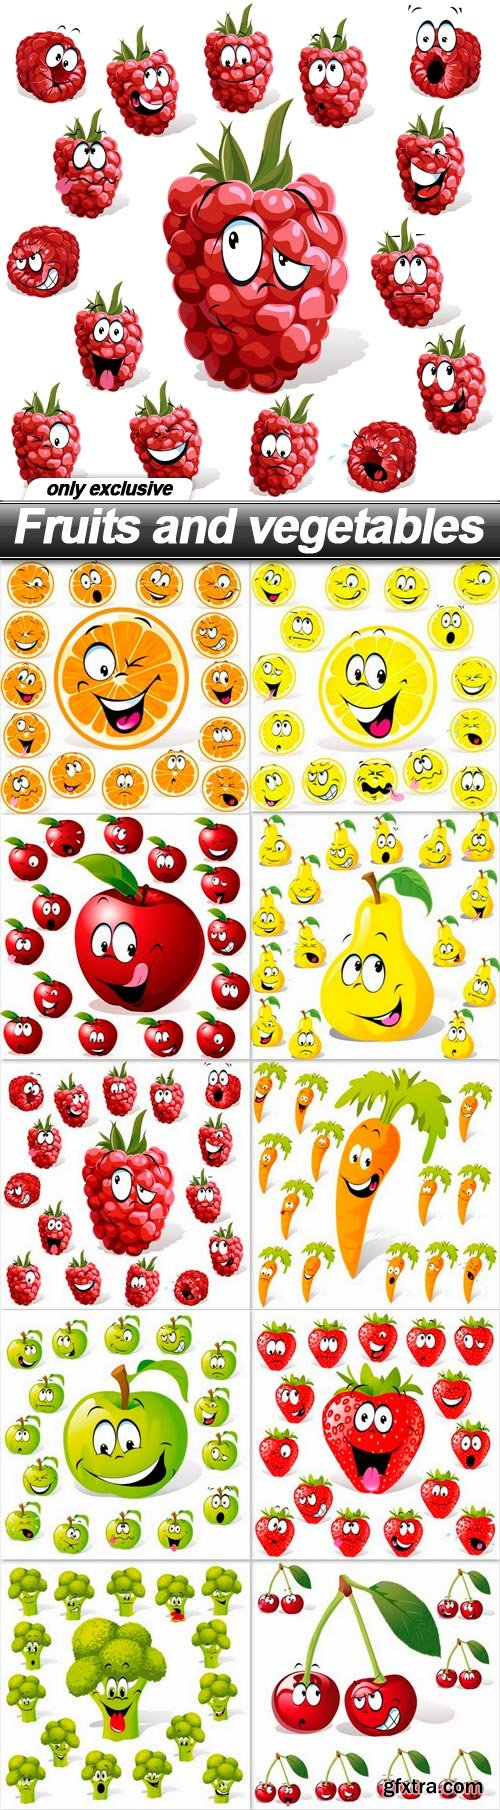 Fruits and vegetables - 10 EPS